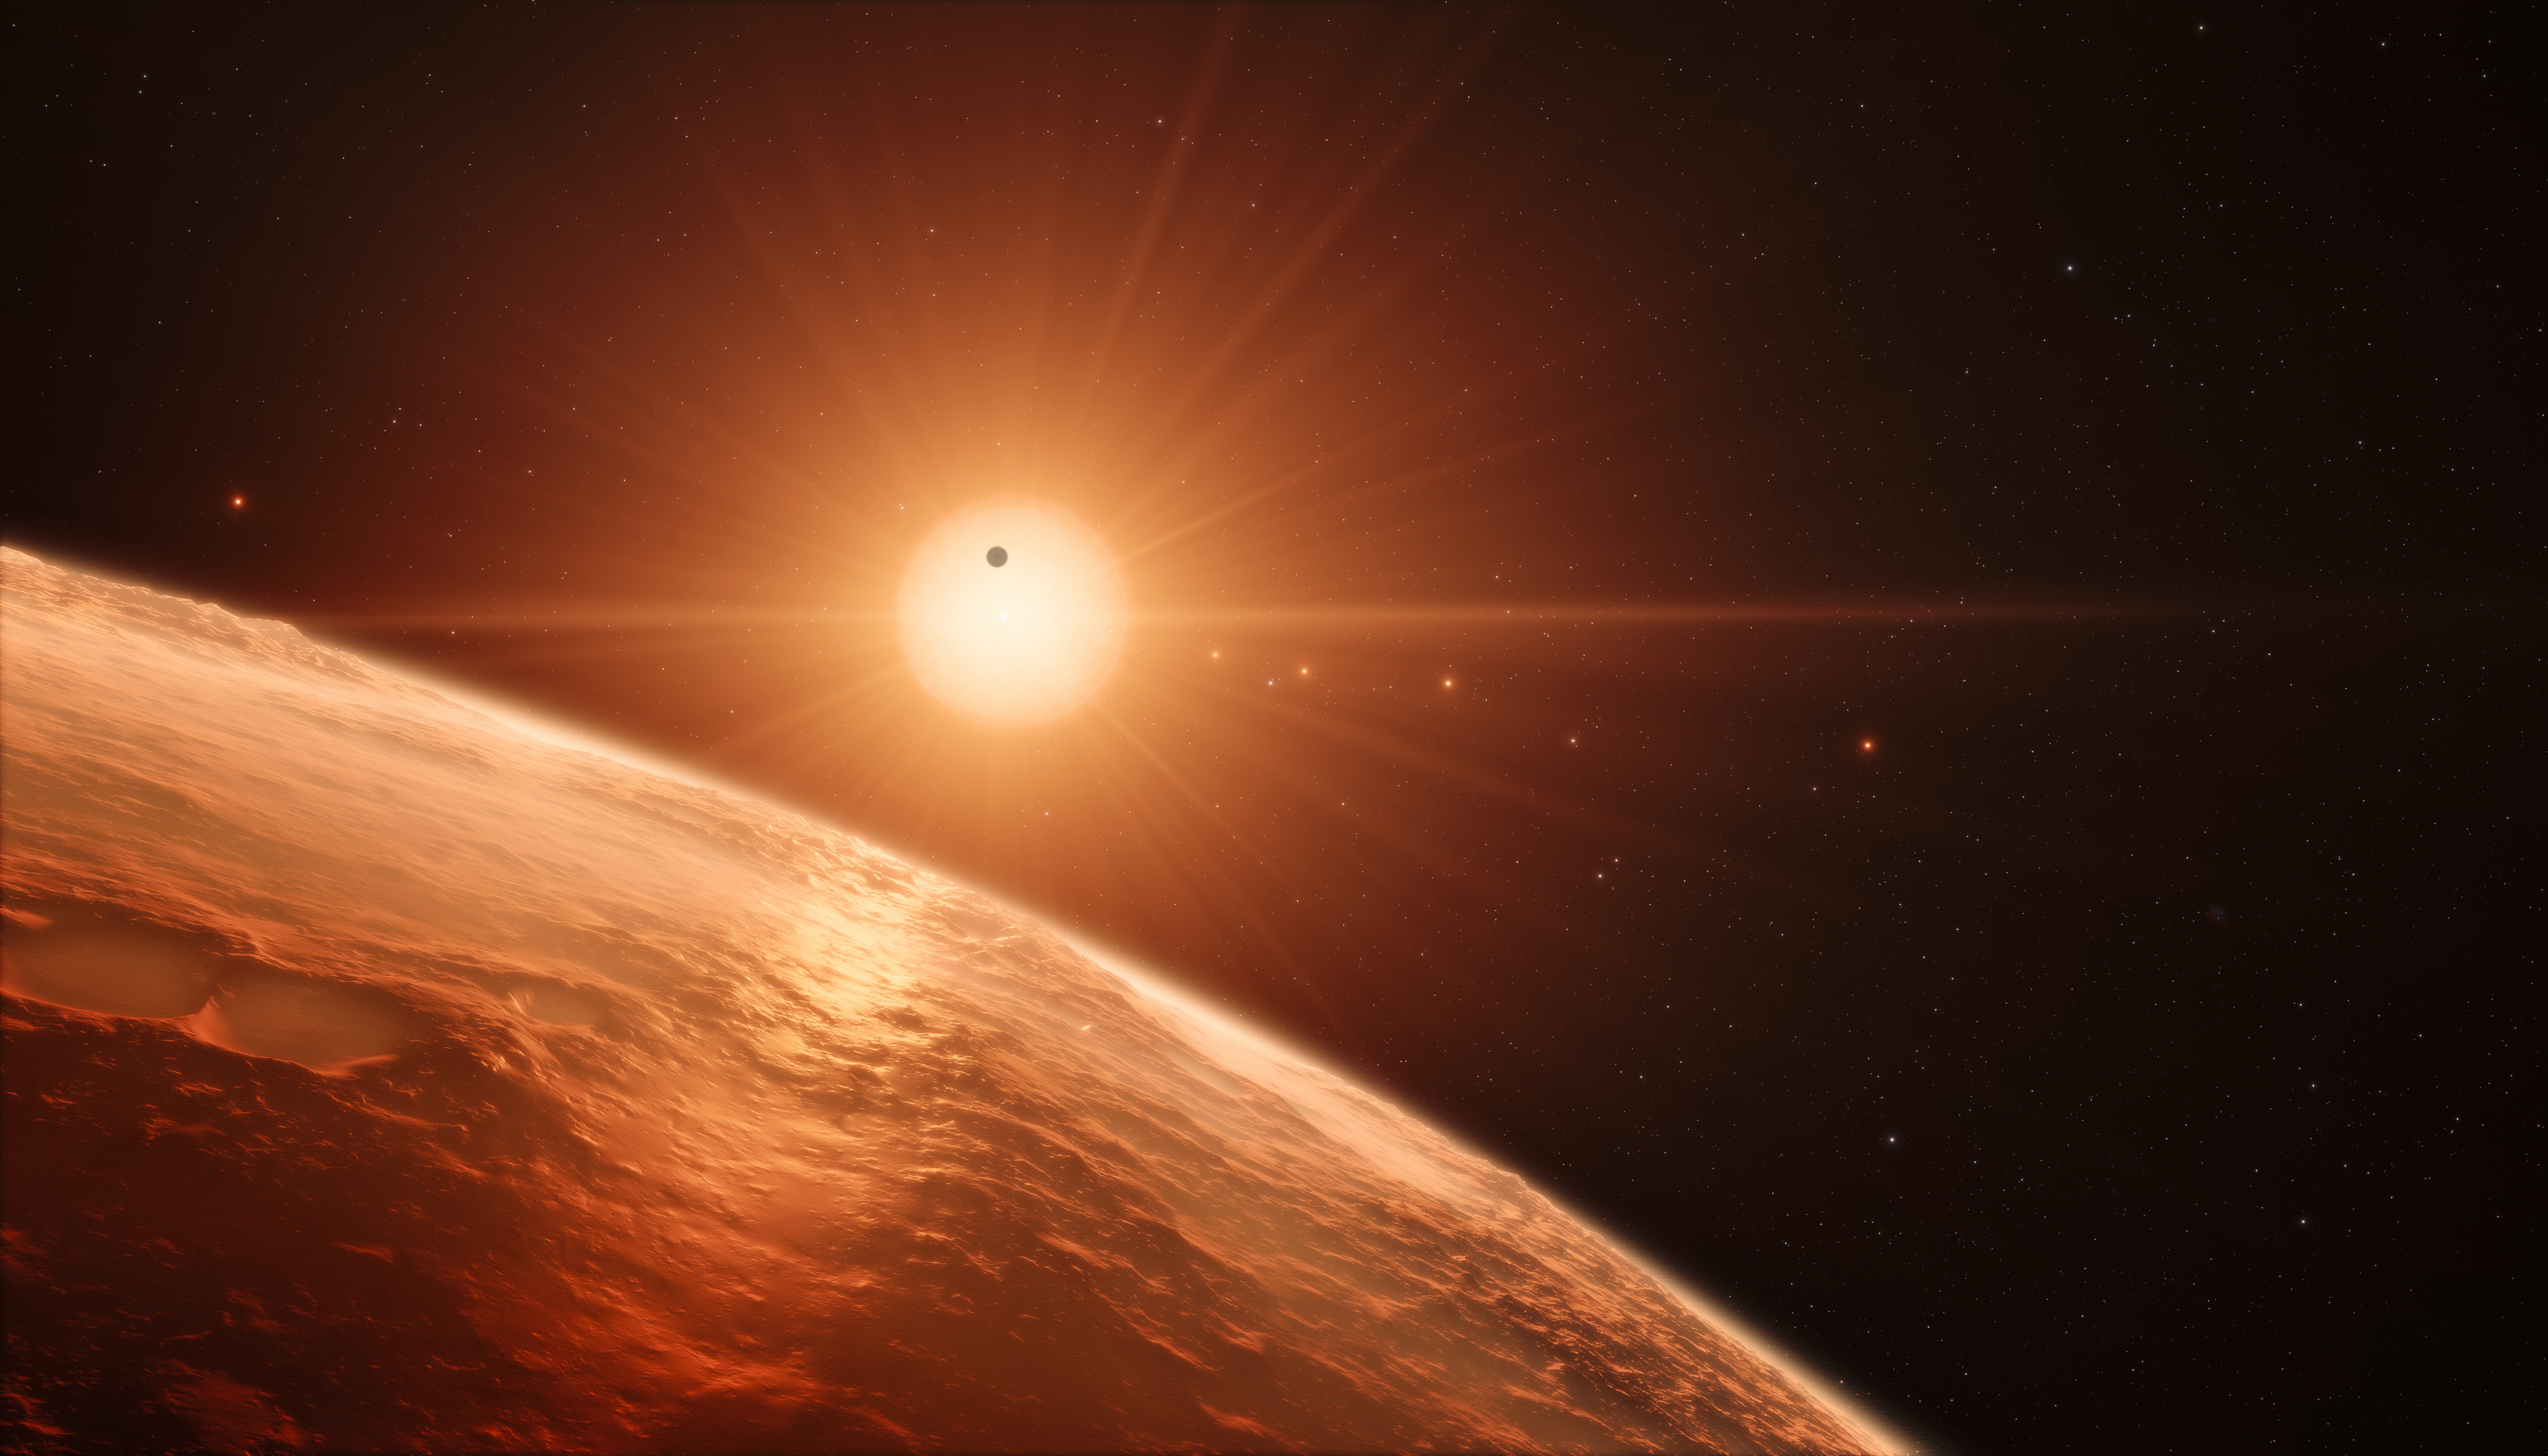 Artist S Impression Of The Trappist 1 Planetary System